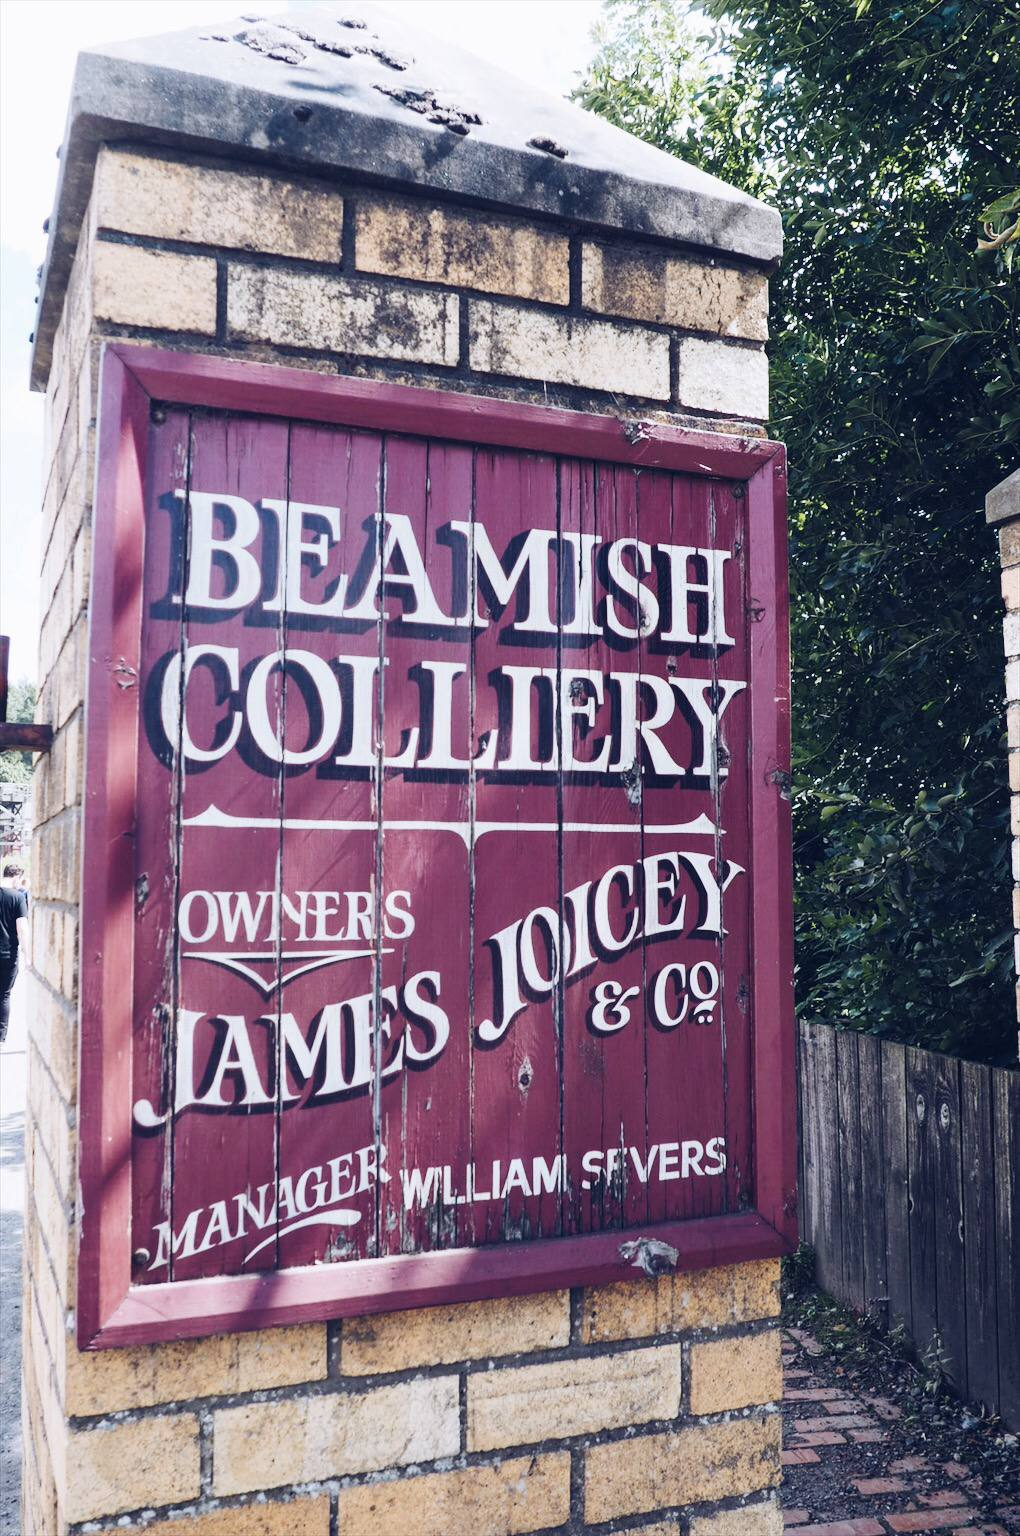 Beamish Colliery: North East days out